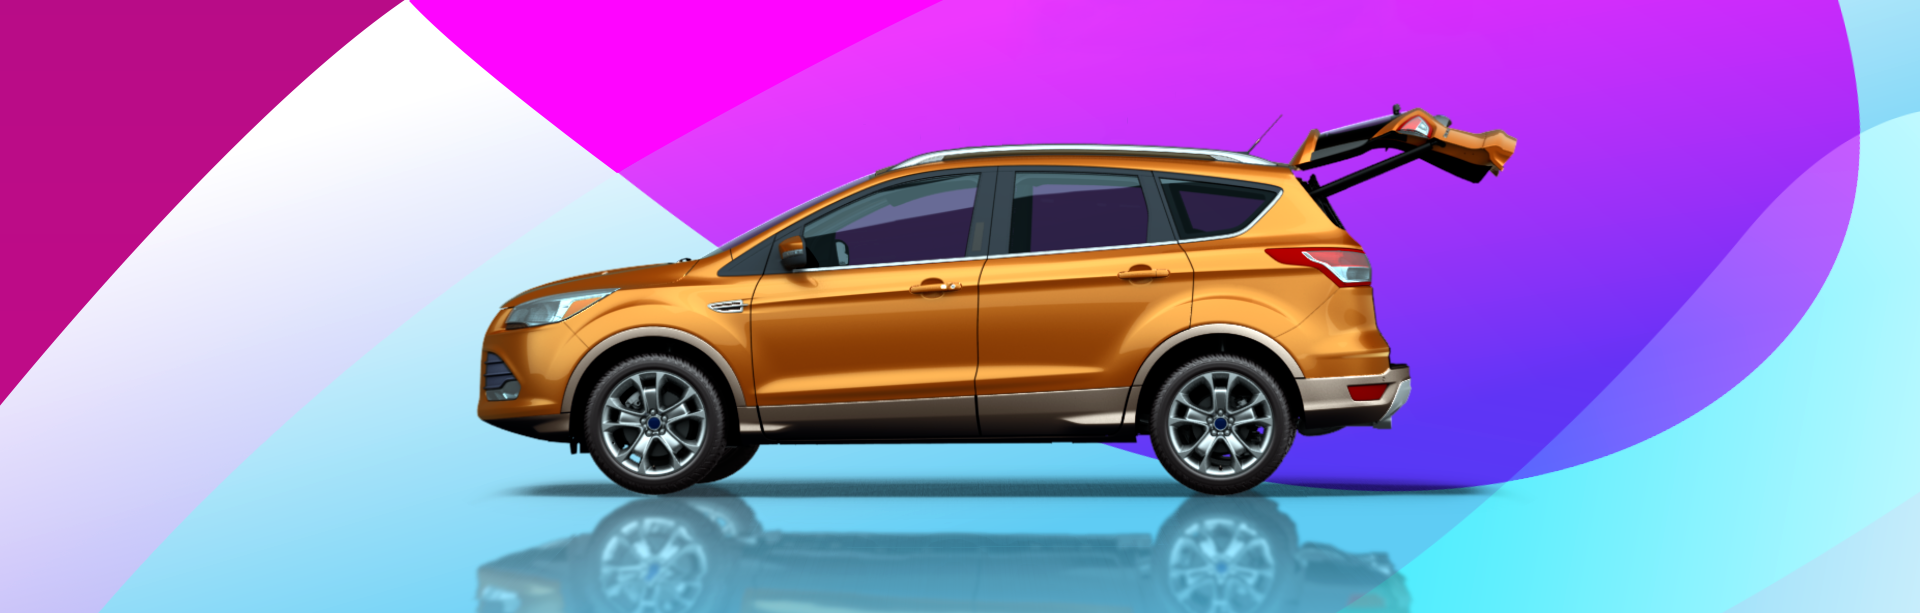 ford_new_i.png